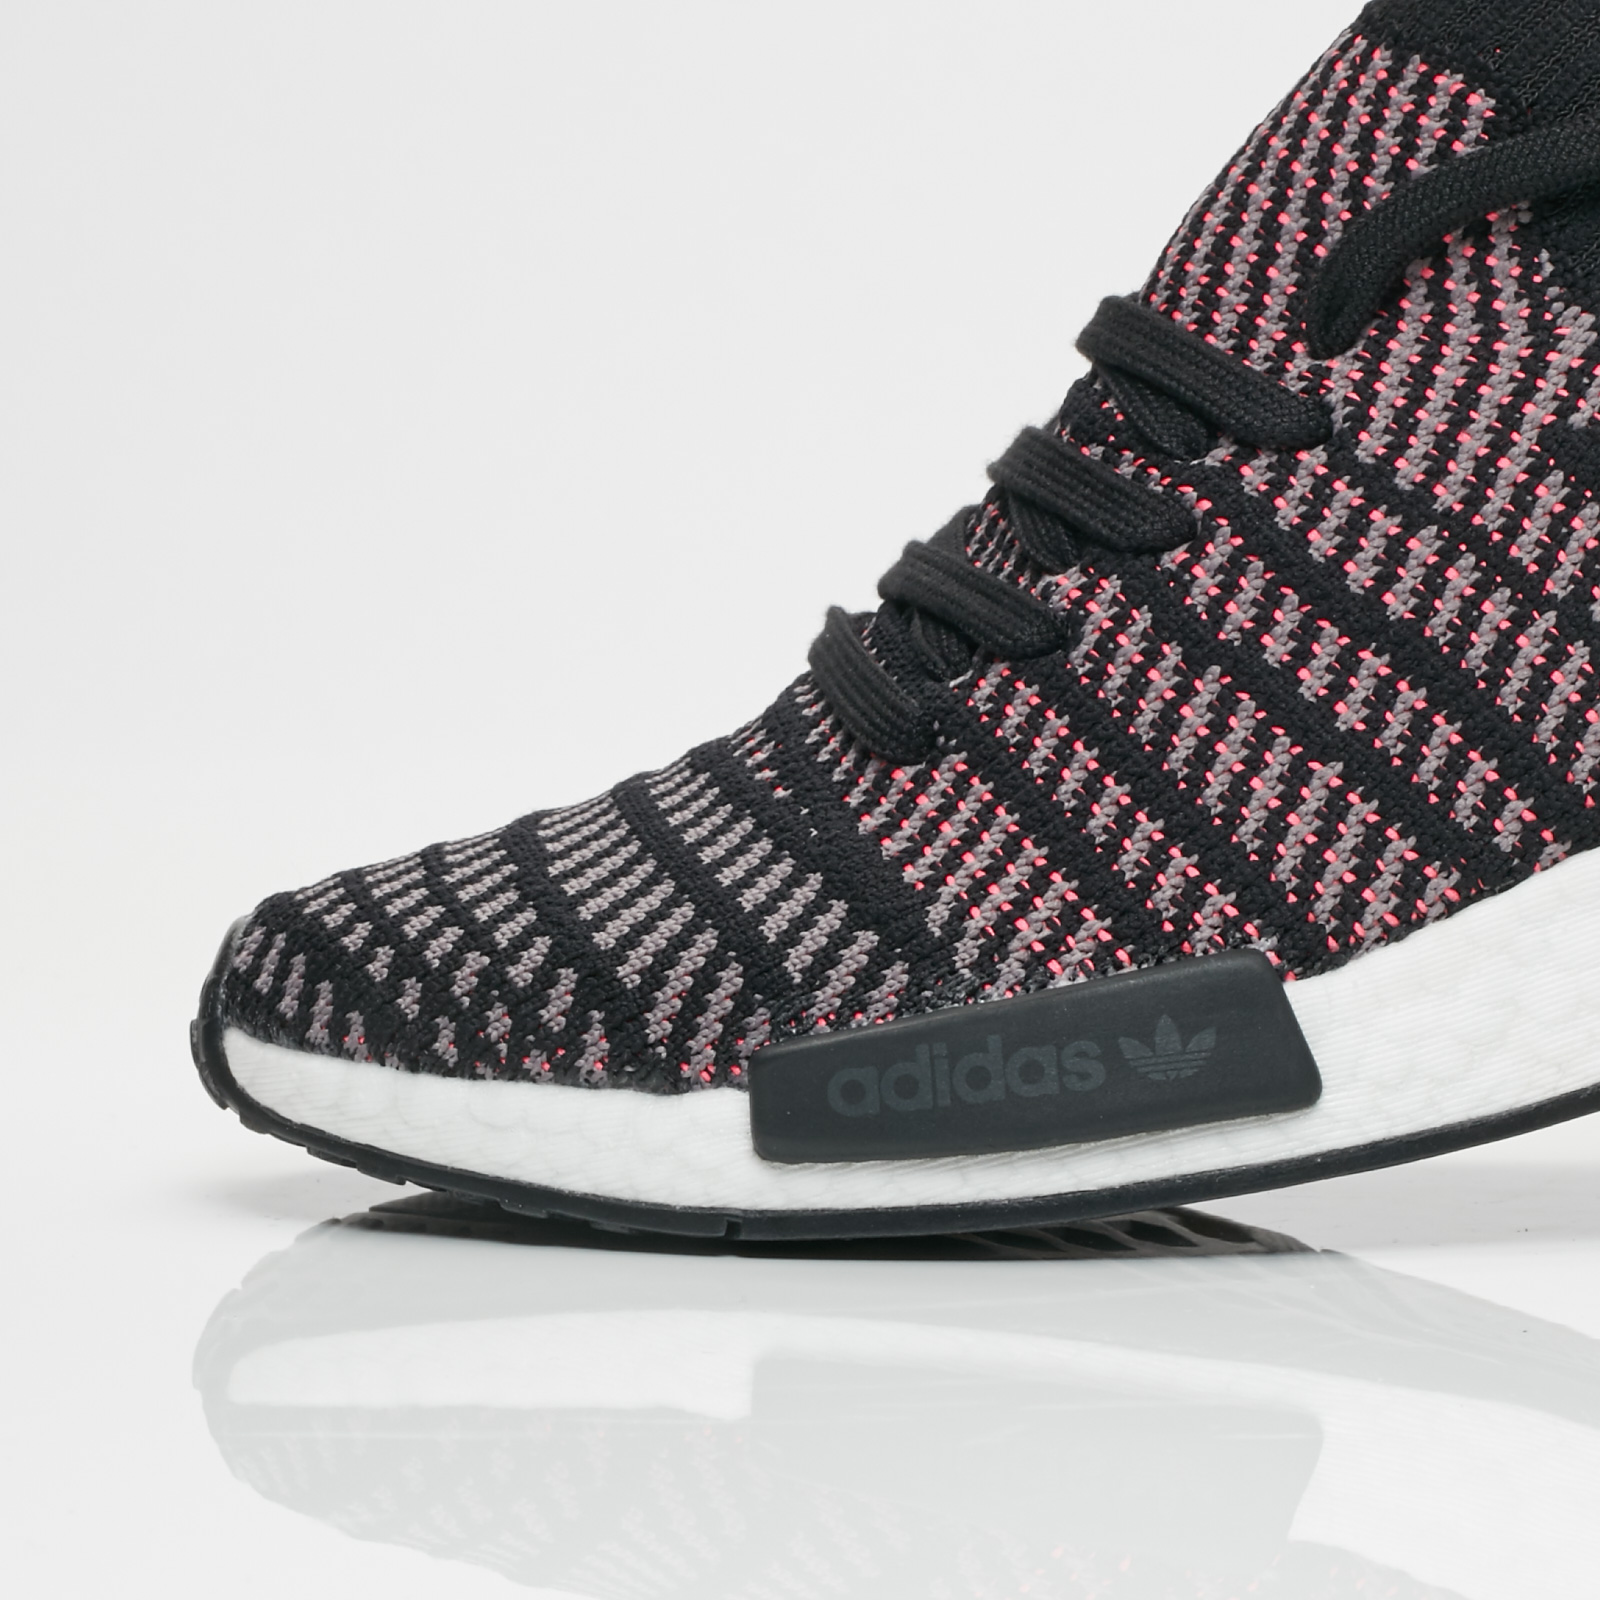 check out f0d81 1d467 adidas NMD R1 STLT Primeknit - Cq2386 - Sneakersnstuff ...